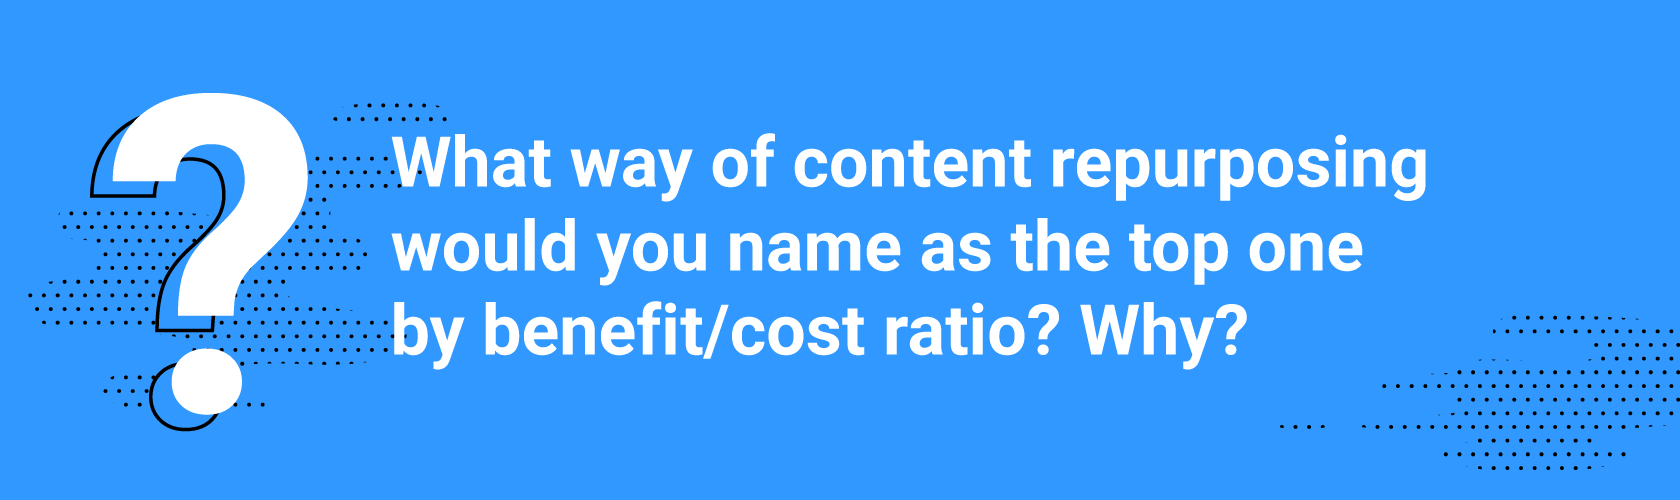 What content repurposing strategy would you name as the top one by benefit/cost ratio? Why?